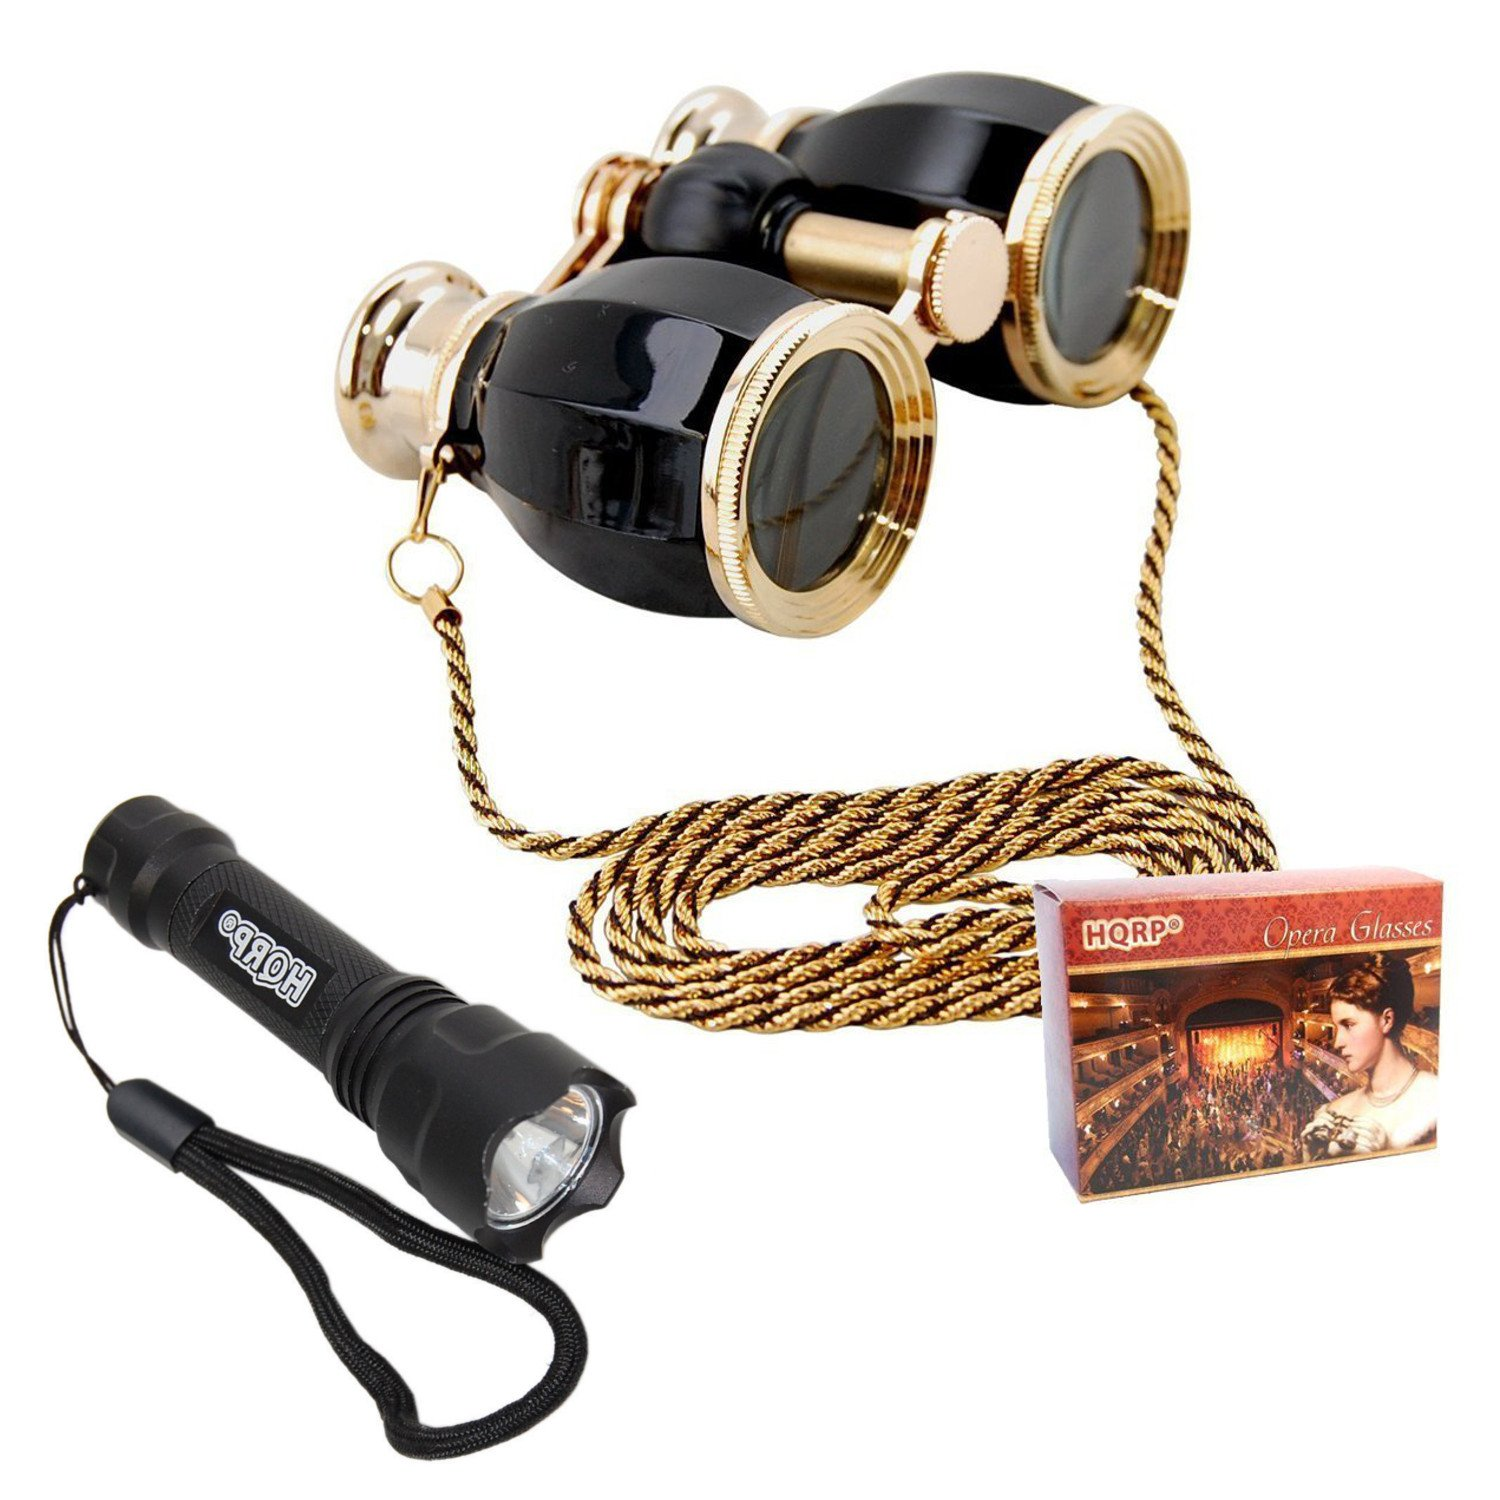 HQRP Theatre Kit: 4 x 30 Black Pearl Opera Glasses Binocular Antique Style with Gold Trim & Necklace Chain + Compact Ultra Bright Flashlight